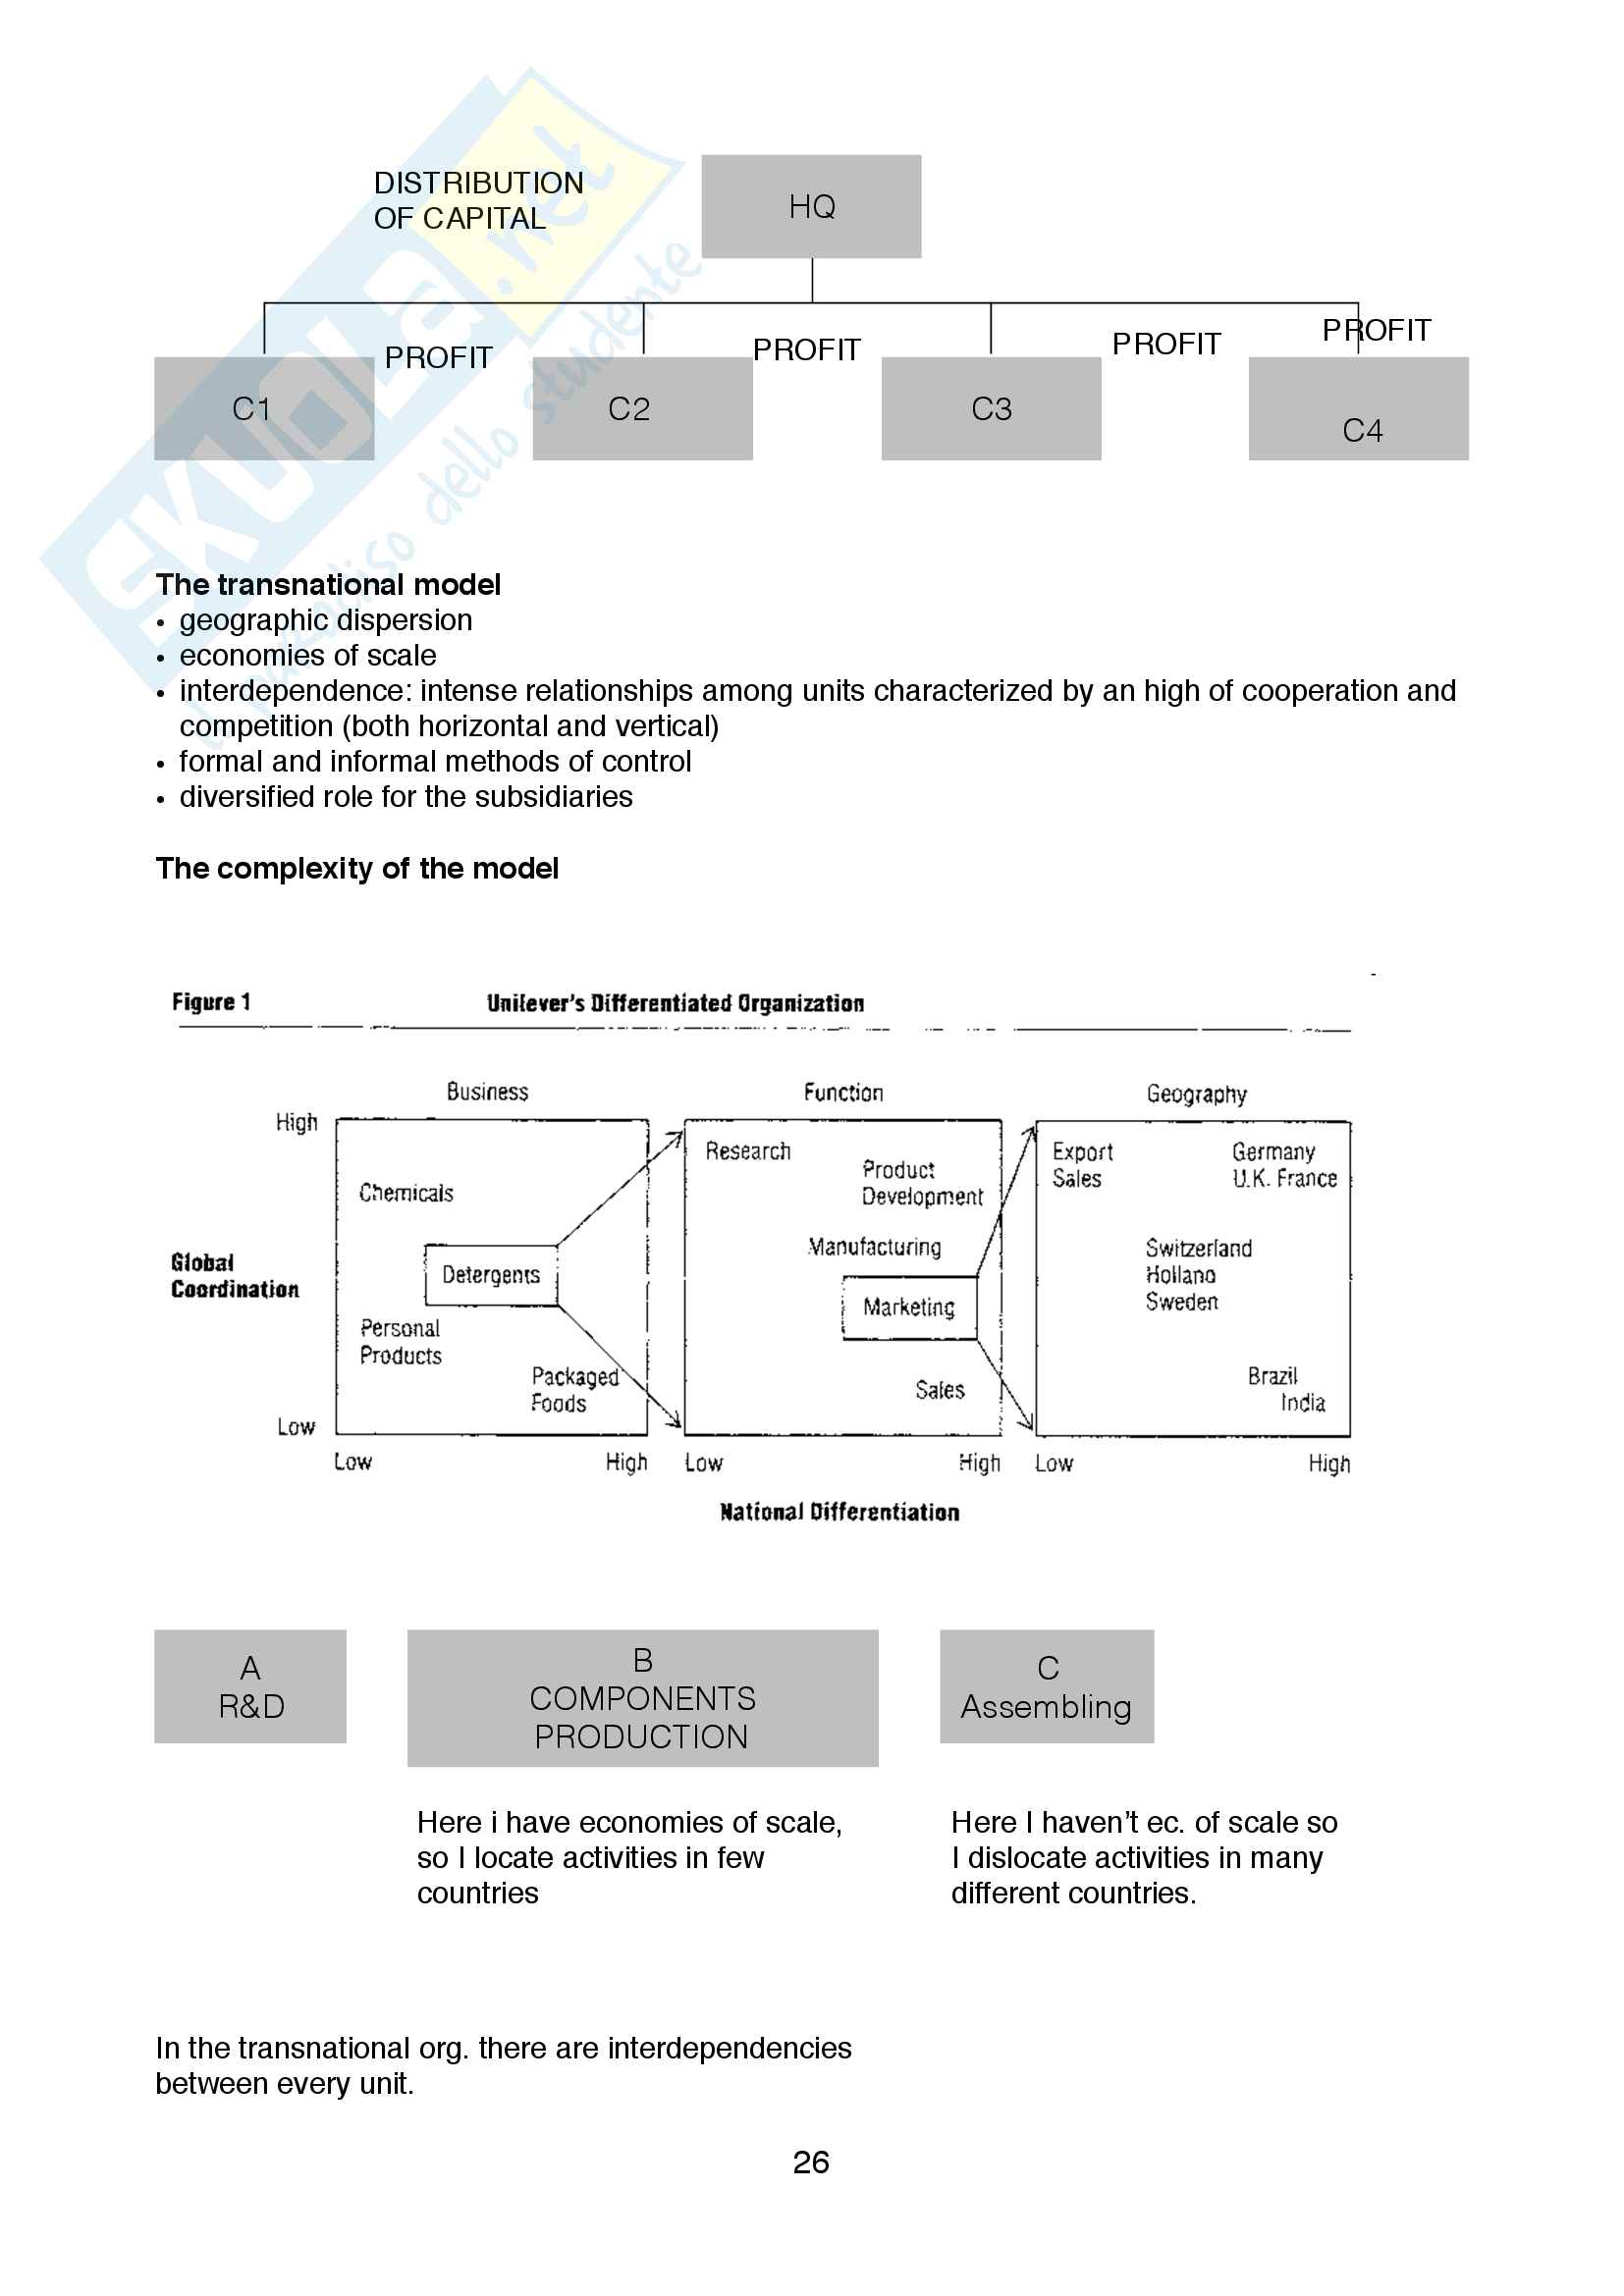 Appunti International Business & Management Pag. 26